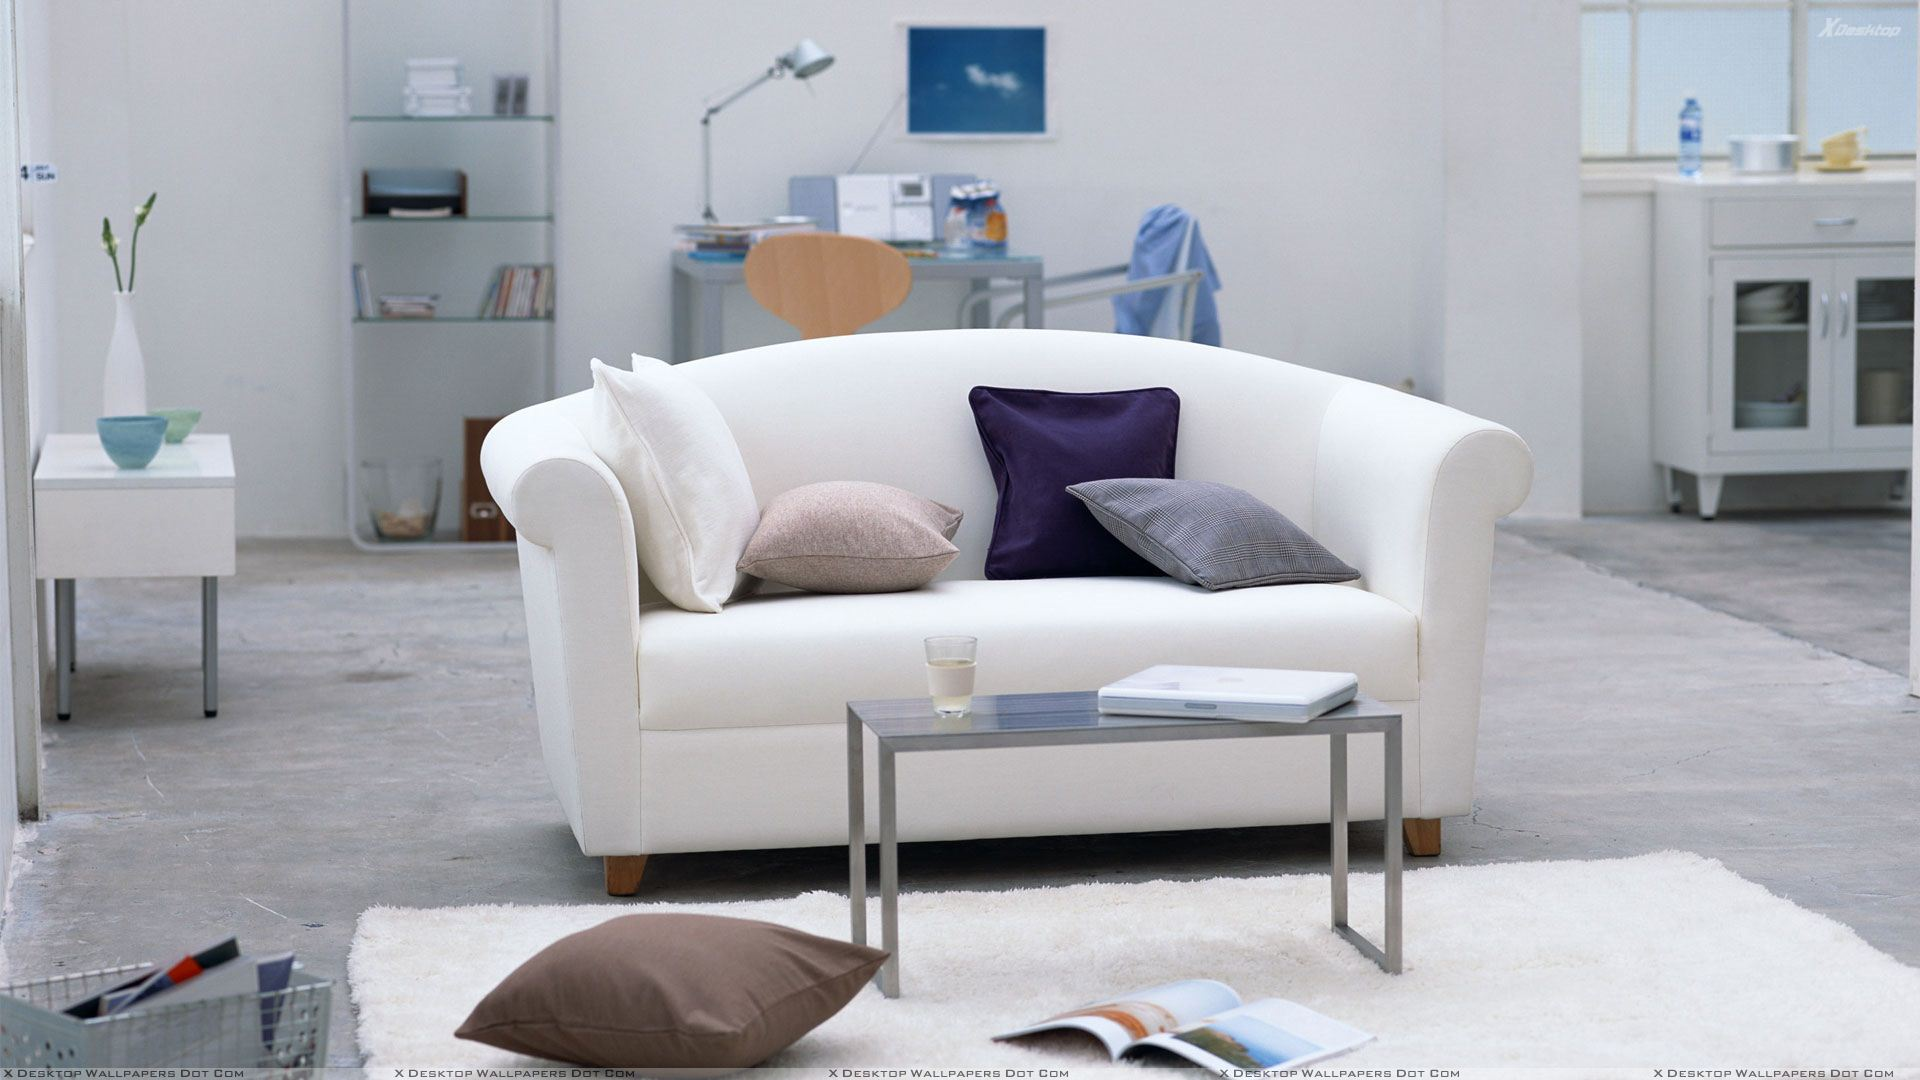 White Sofa And Table In Study Room